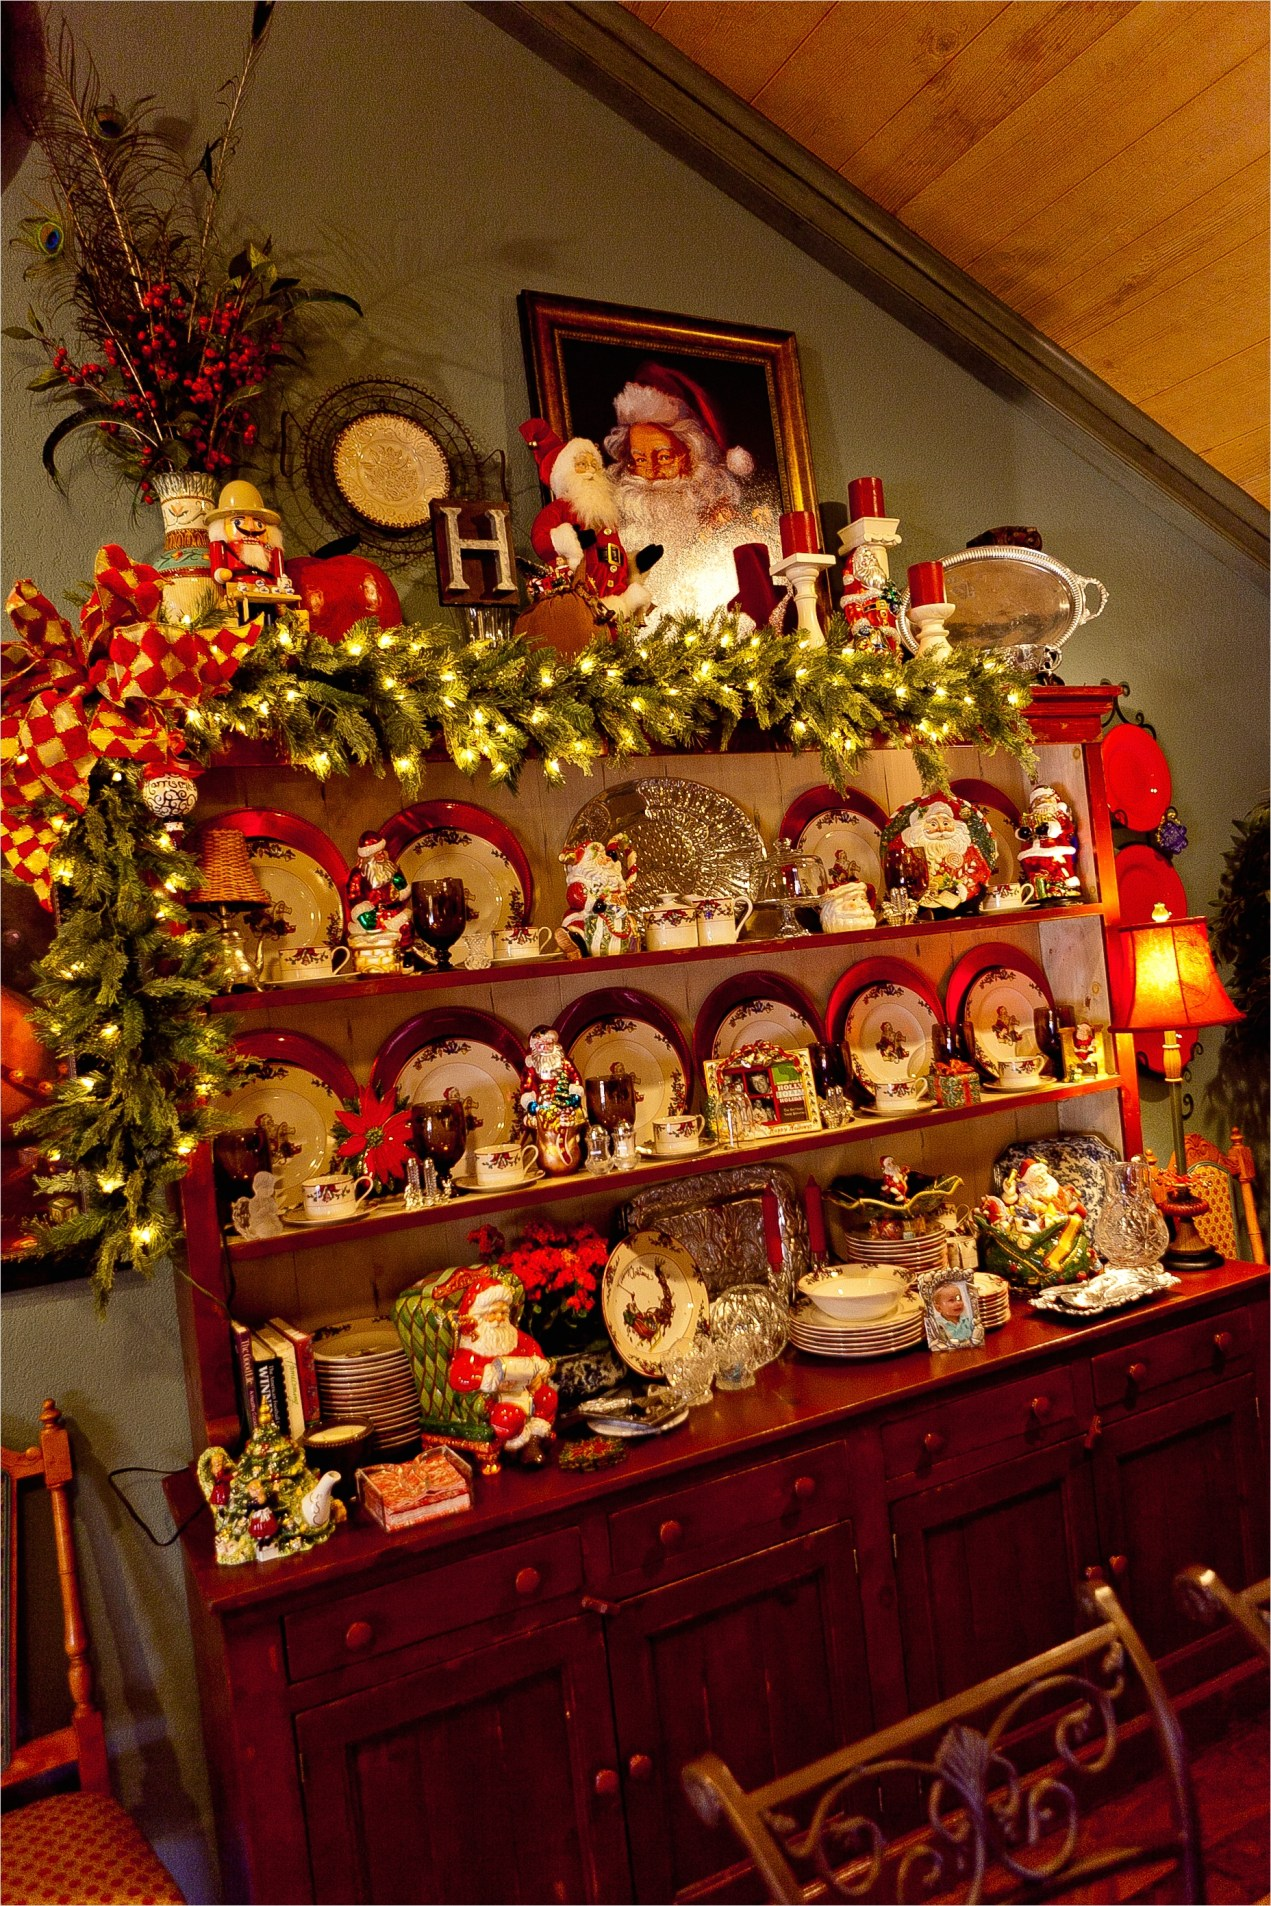 41 Amazing Country Christmas Decorating Ideas 76 Show Me More… Of A Country French Home Decorated for Christmas 8